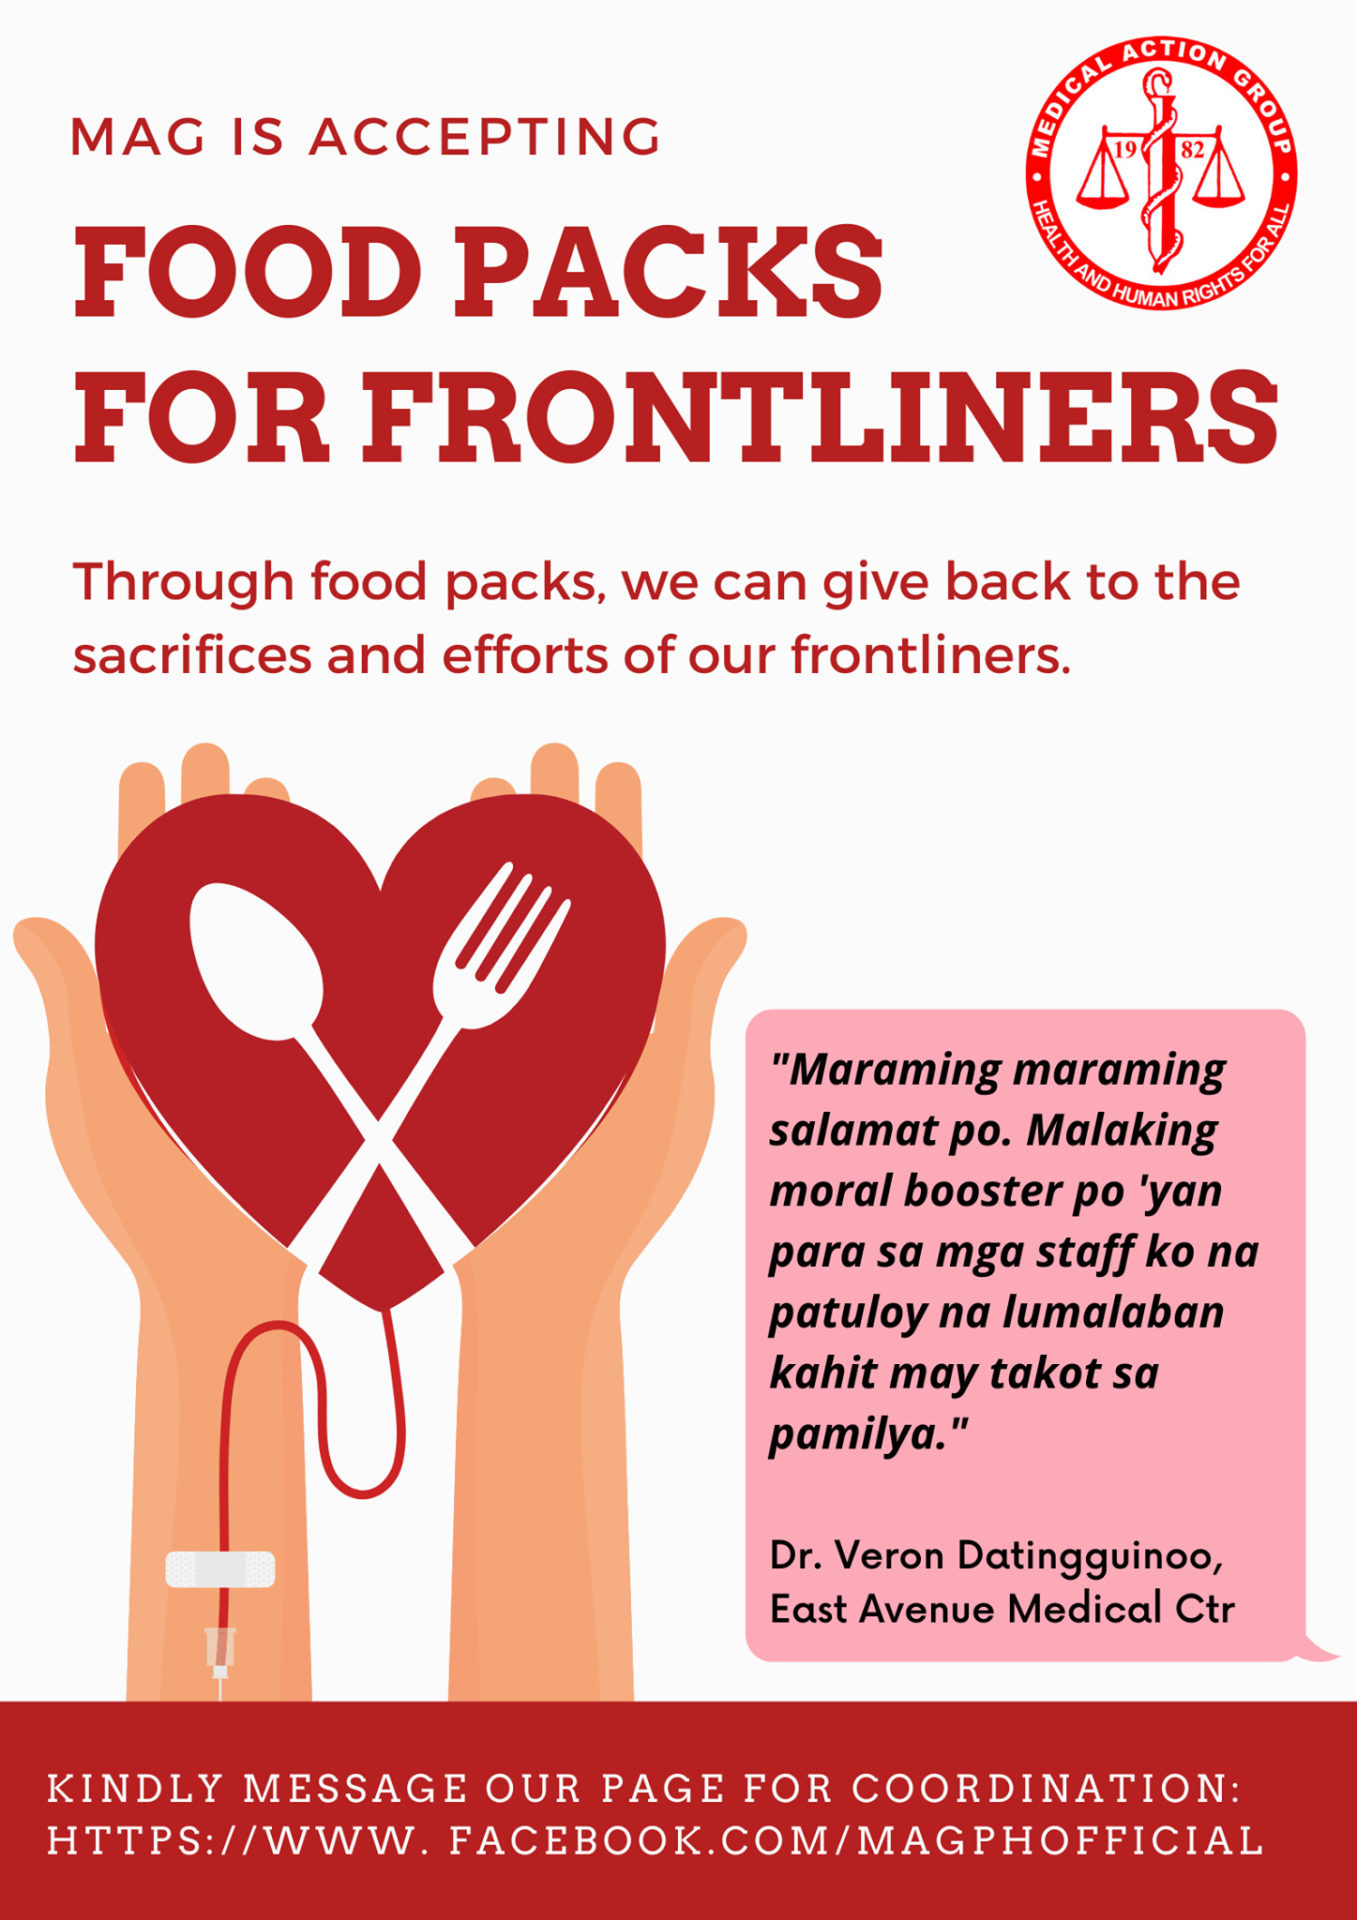 FOOD PACKS FOR FRONTLINERS